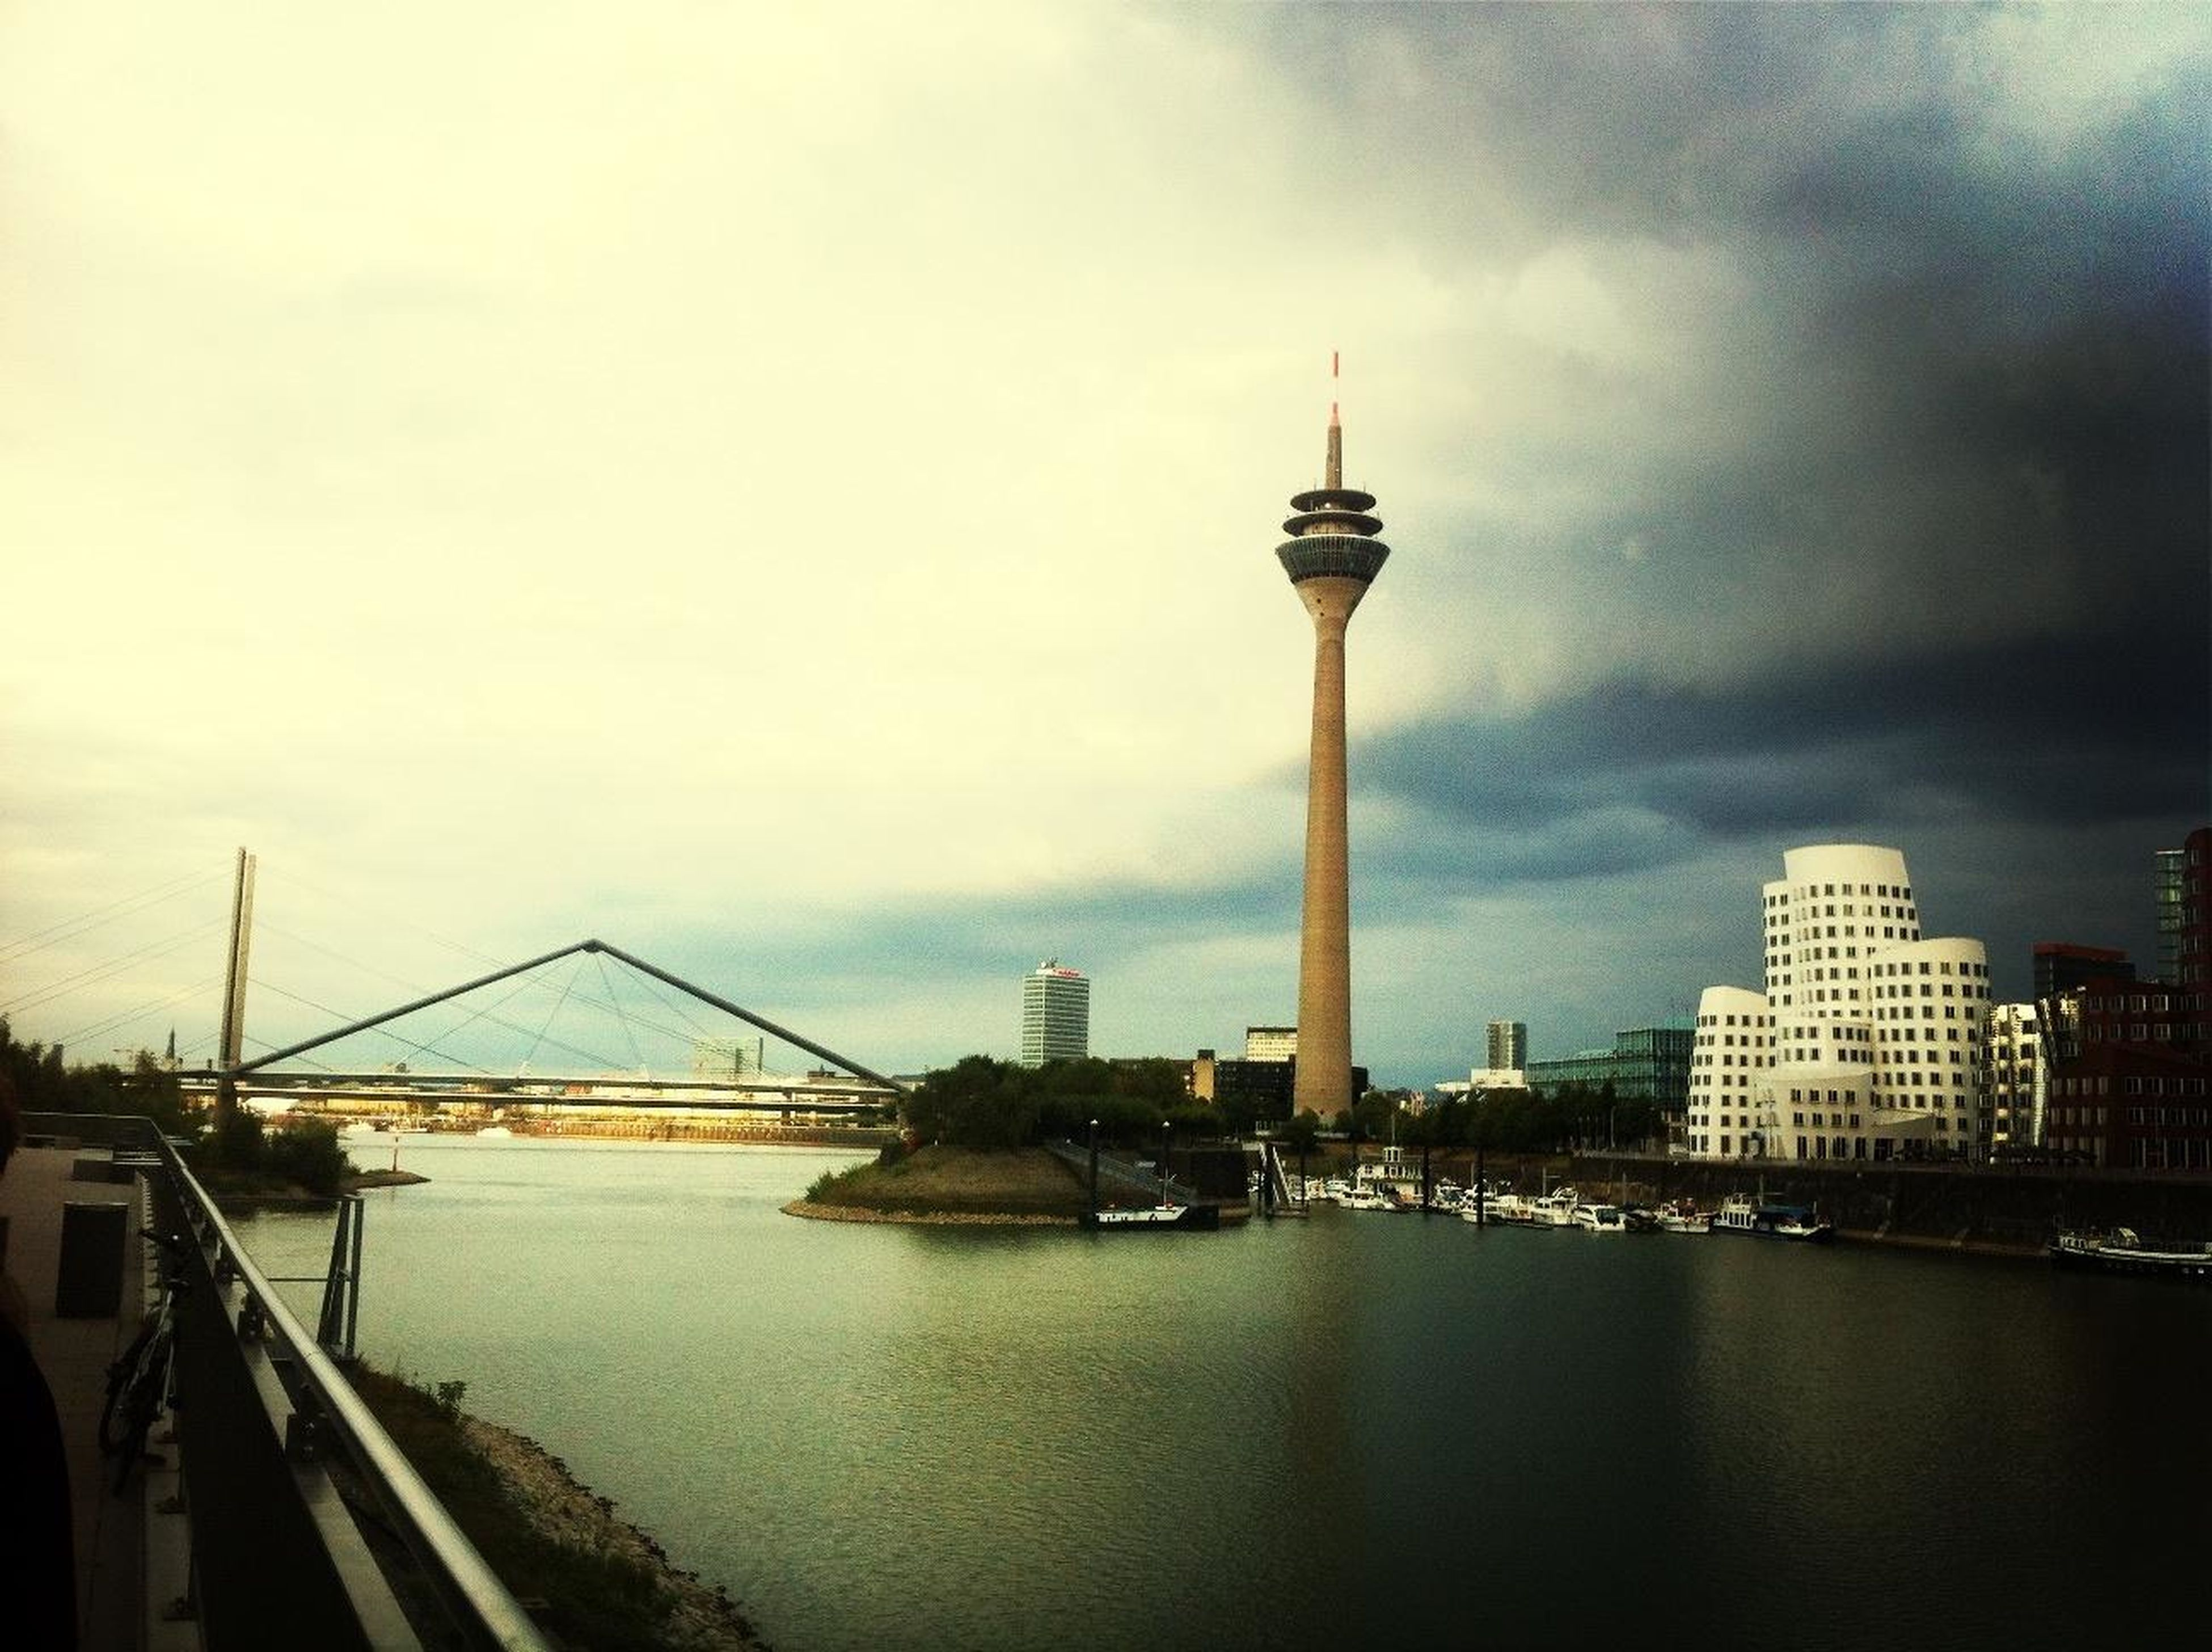 architecture, built structure, sky, building exterior, city, water, cloud - sky, tower, tall - high, communications tower, river, travel destinations, international landmark, capital cities, cloudy, famous place, cityscape, waterfront, travel, tourism